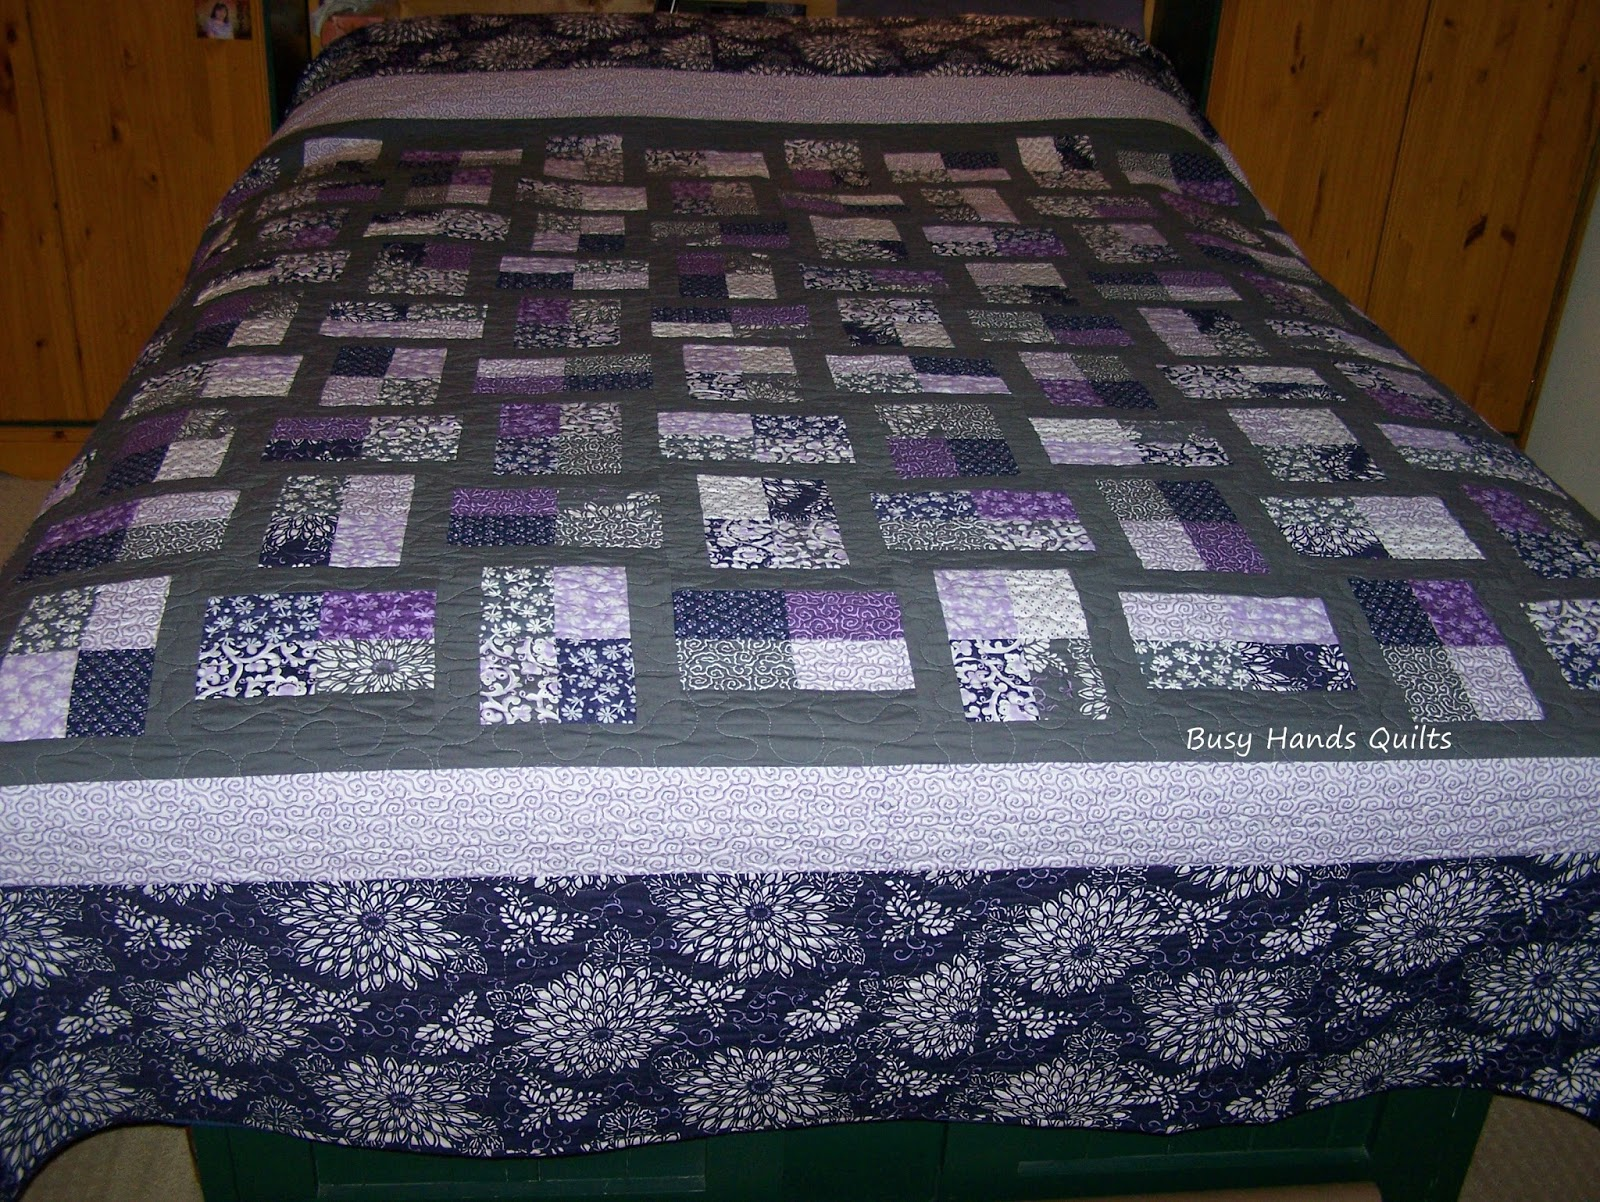 Busy Hands Quilts: King-Sized Phoebe's Flower Box Quilt Set +++ ... : quilt sales - Adamdwight.com